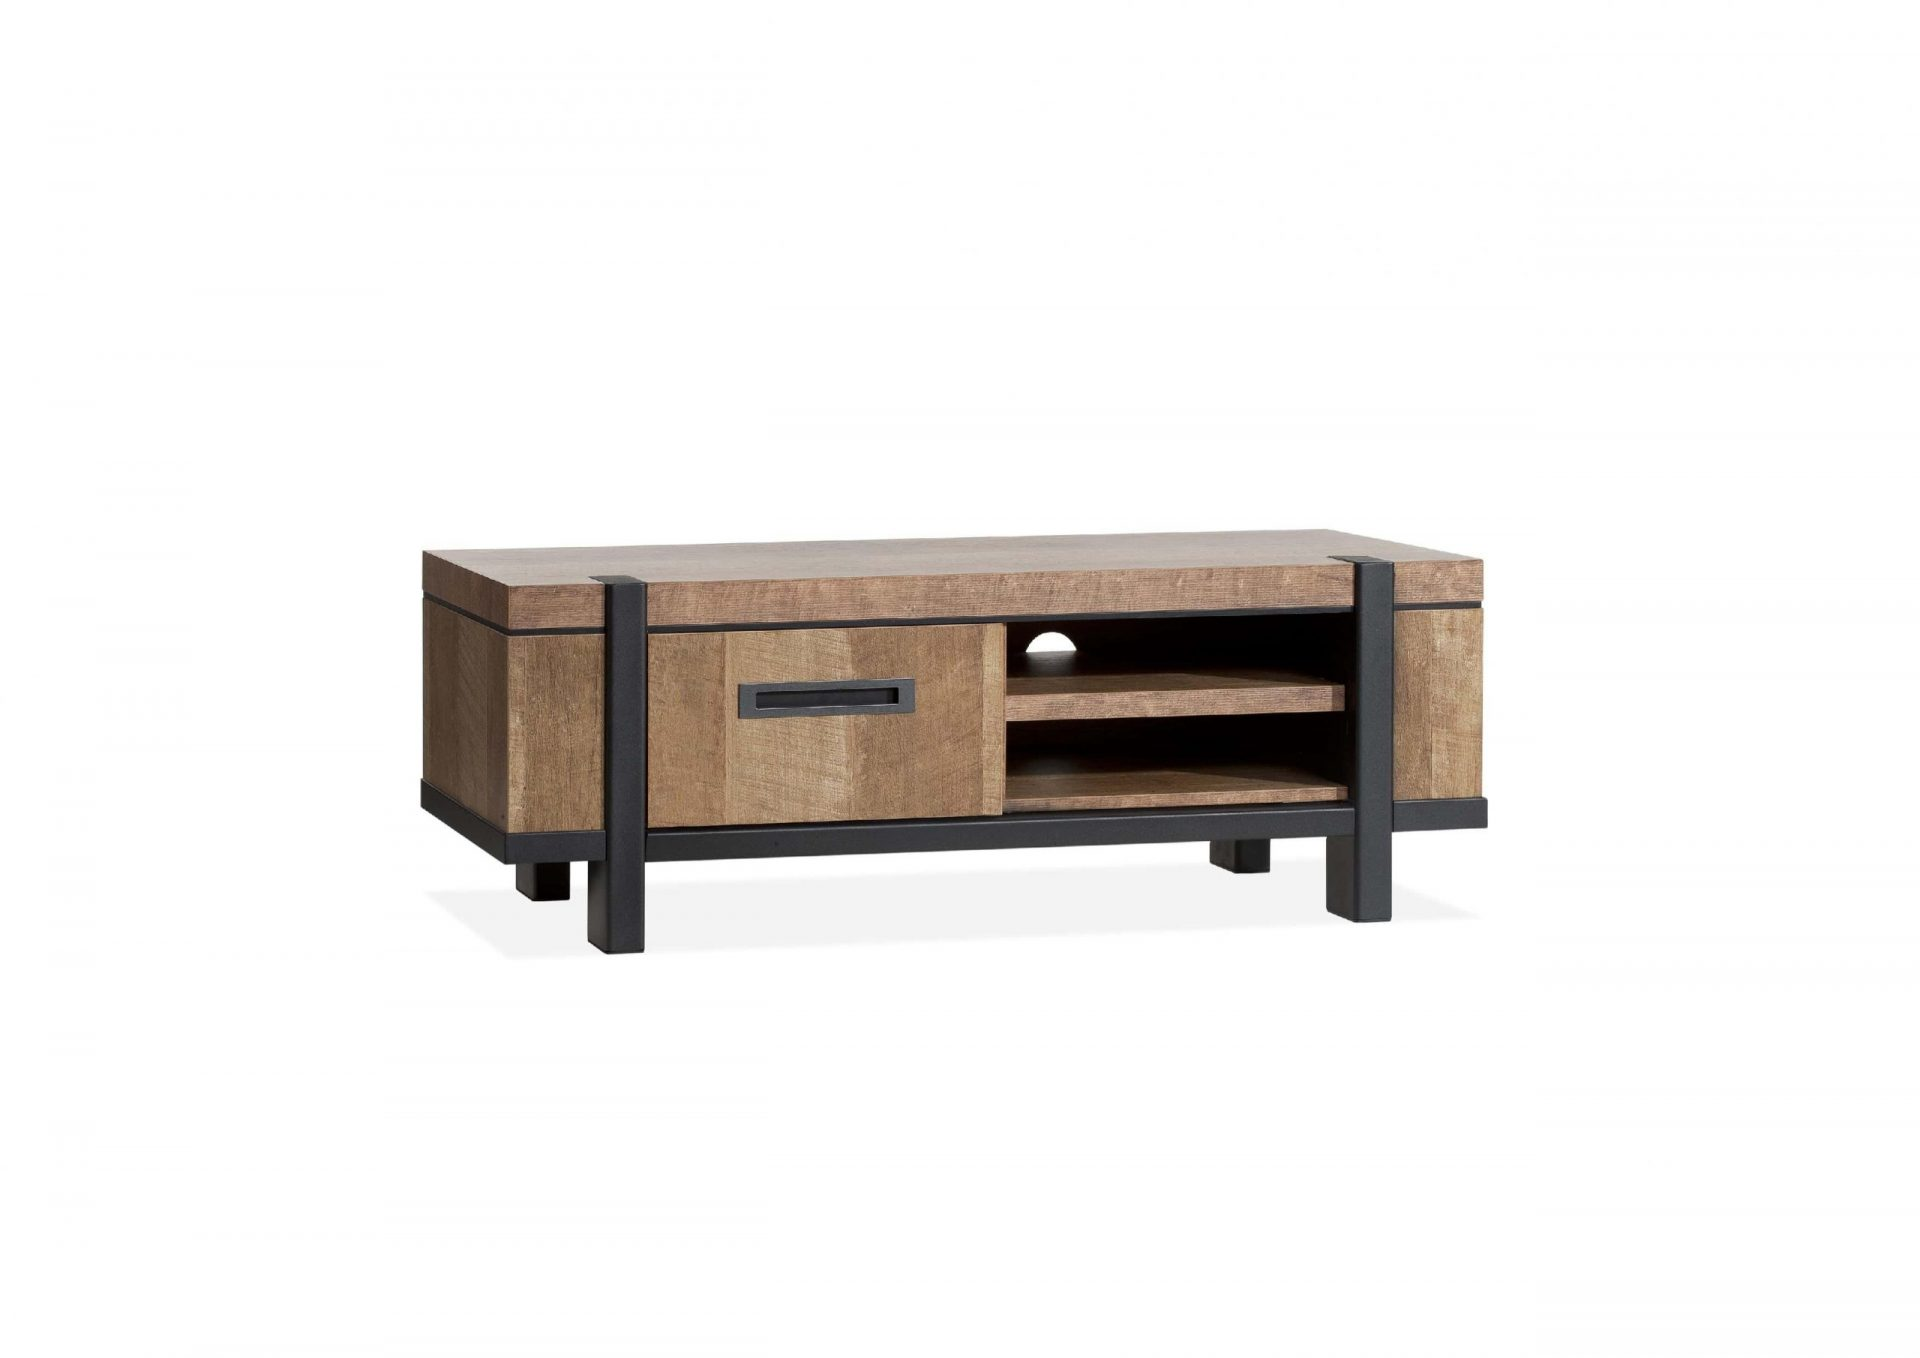 Laag Tv Meubel.Tv Cabinet Binck Made Of Lamulux View The Entire Series Now Online